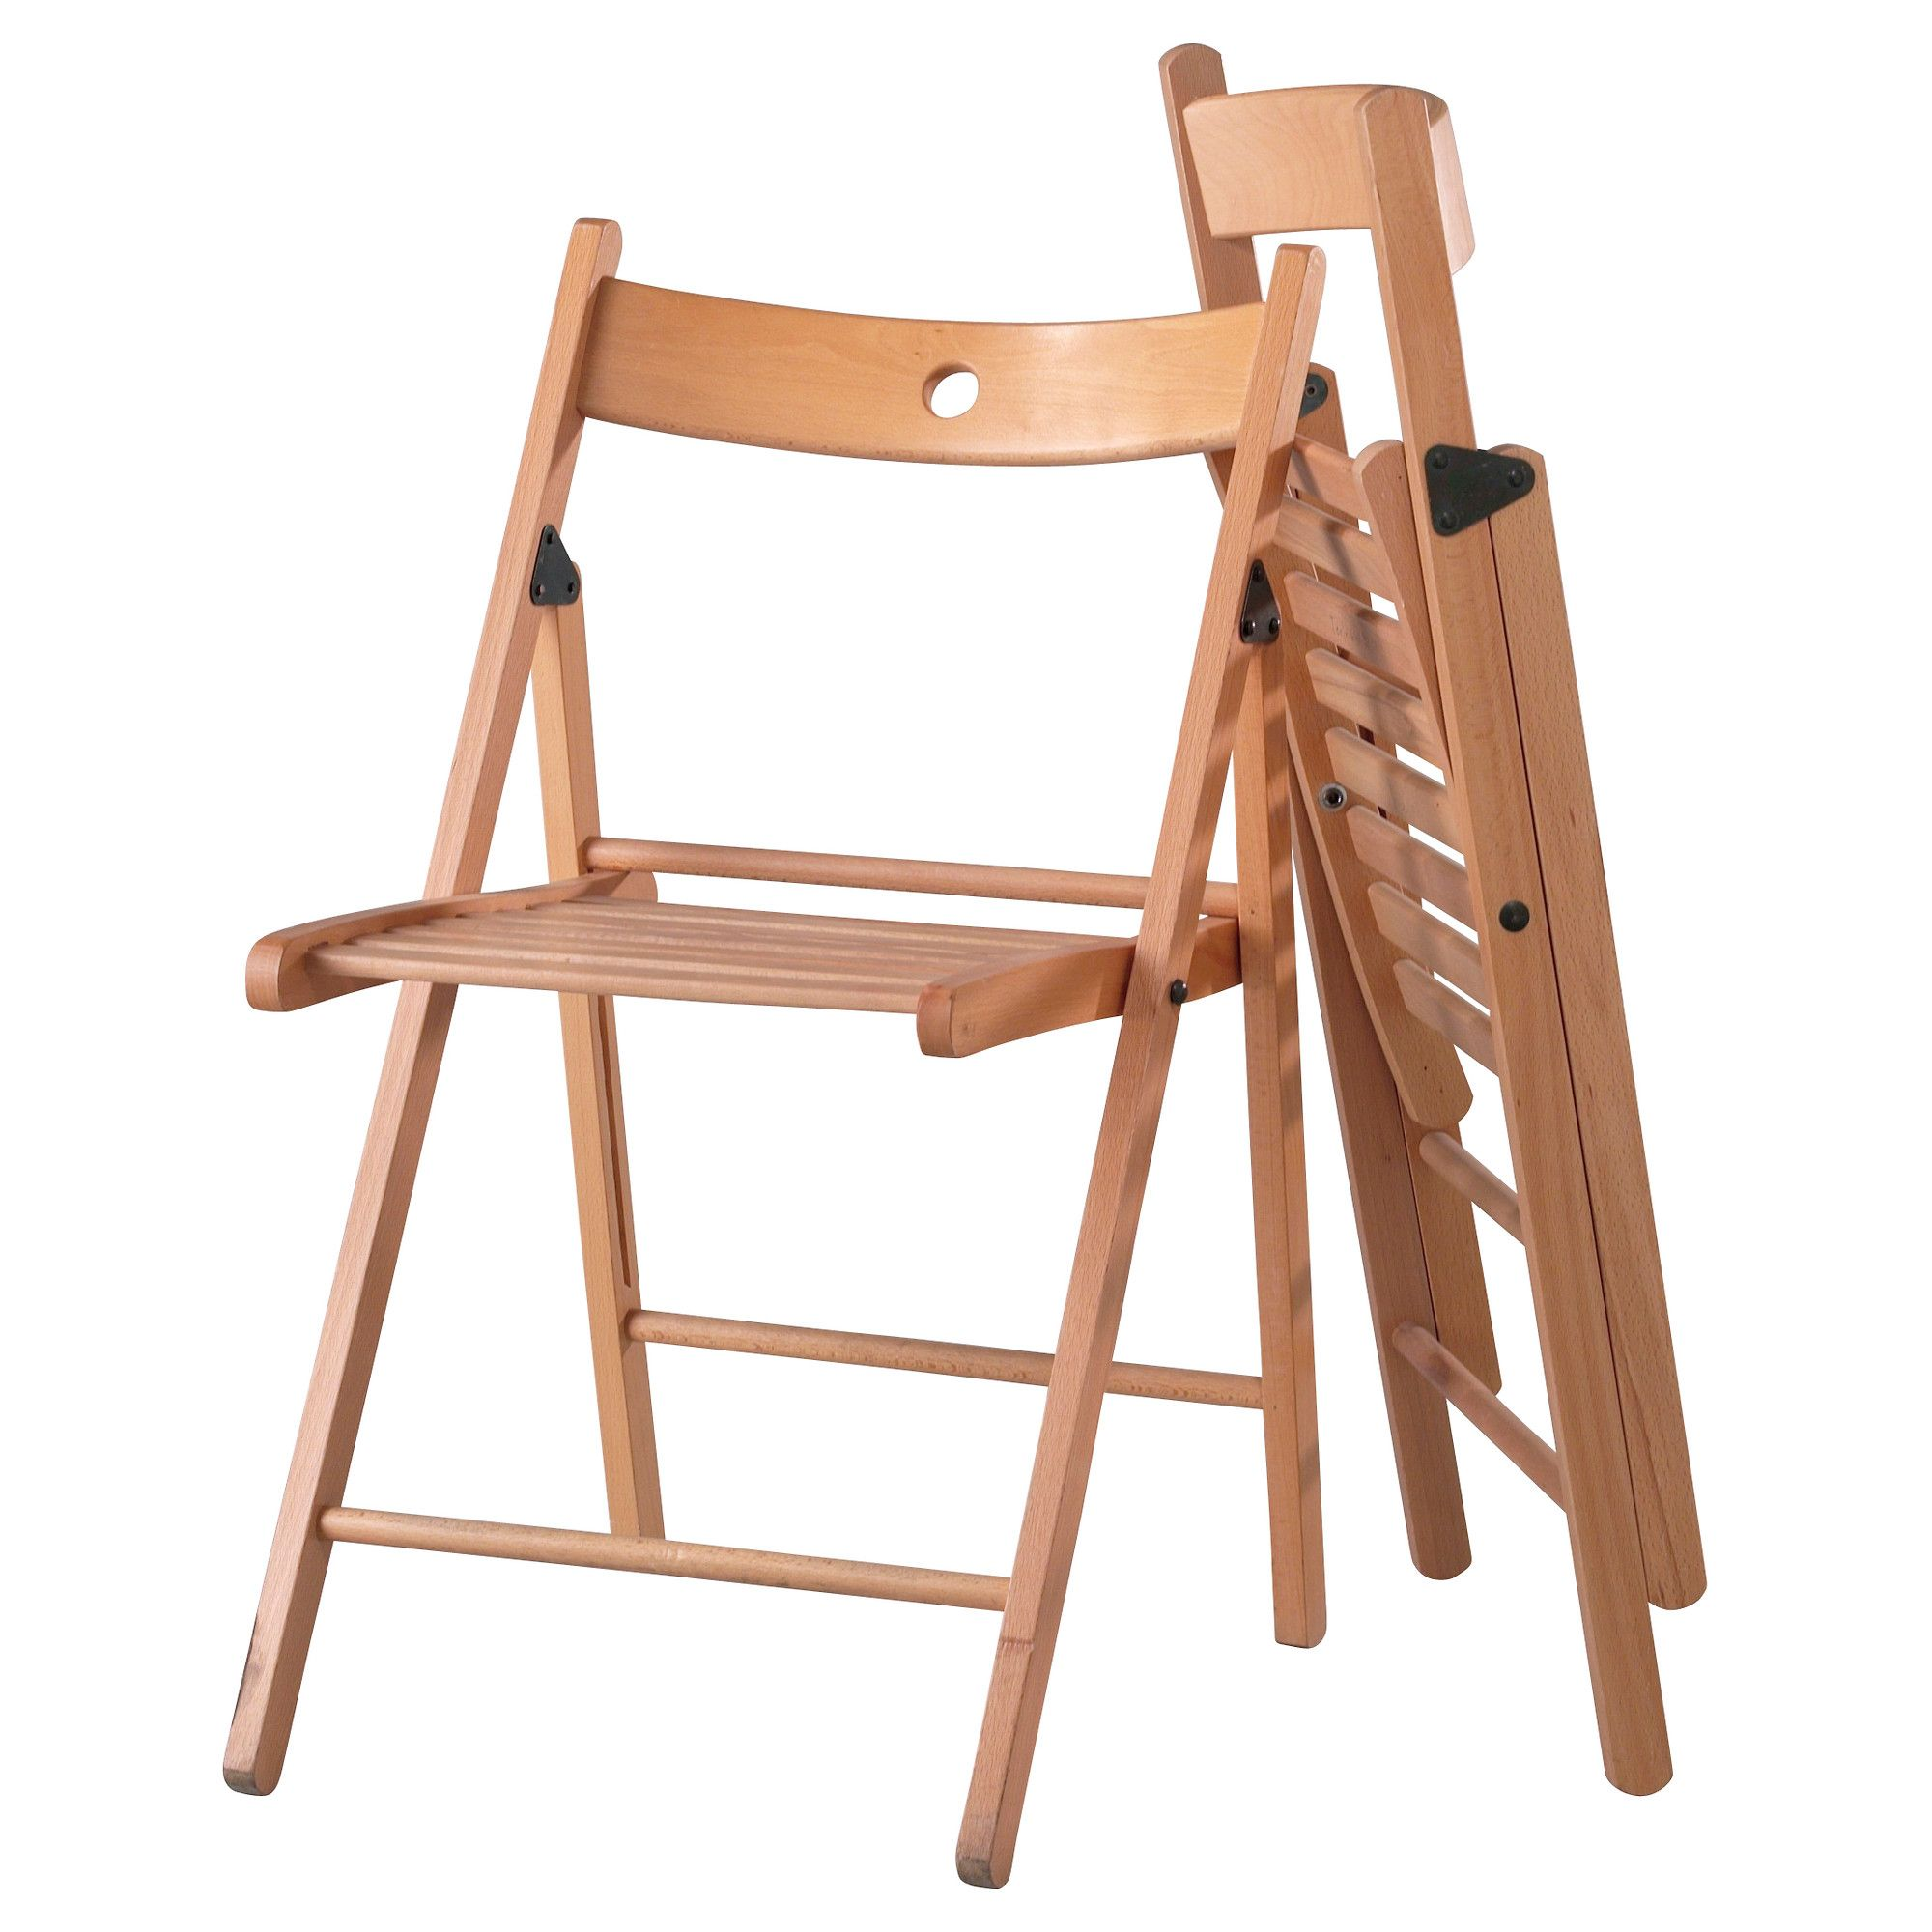 folding terje products us chair catalog en ikea foldable